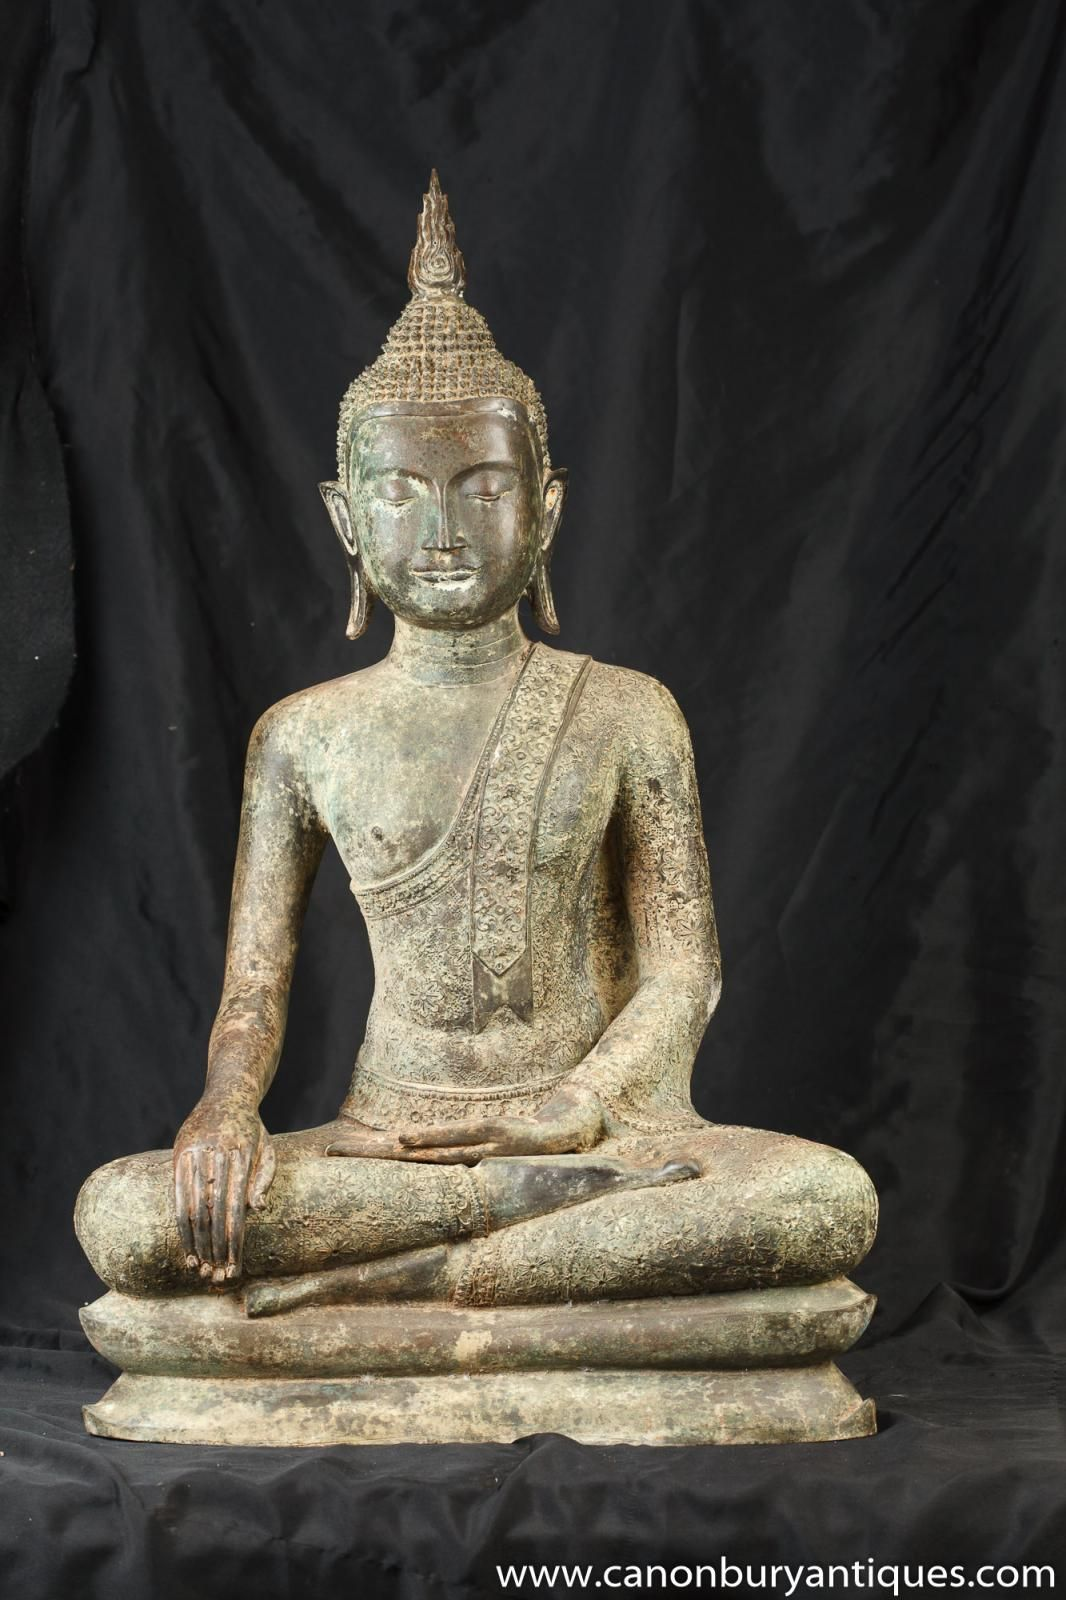 Photo of Bronze Tibetan Buddha Statue Casting Lotus Pose Buddhism Buddhist Art